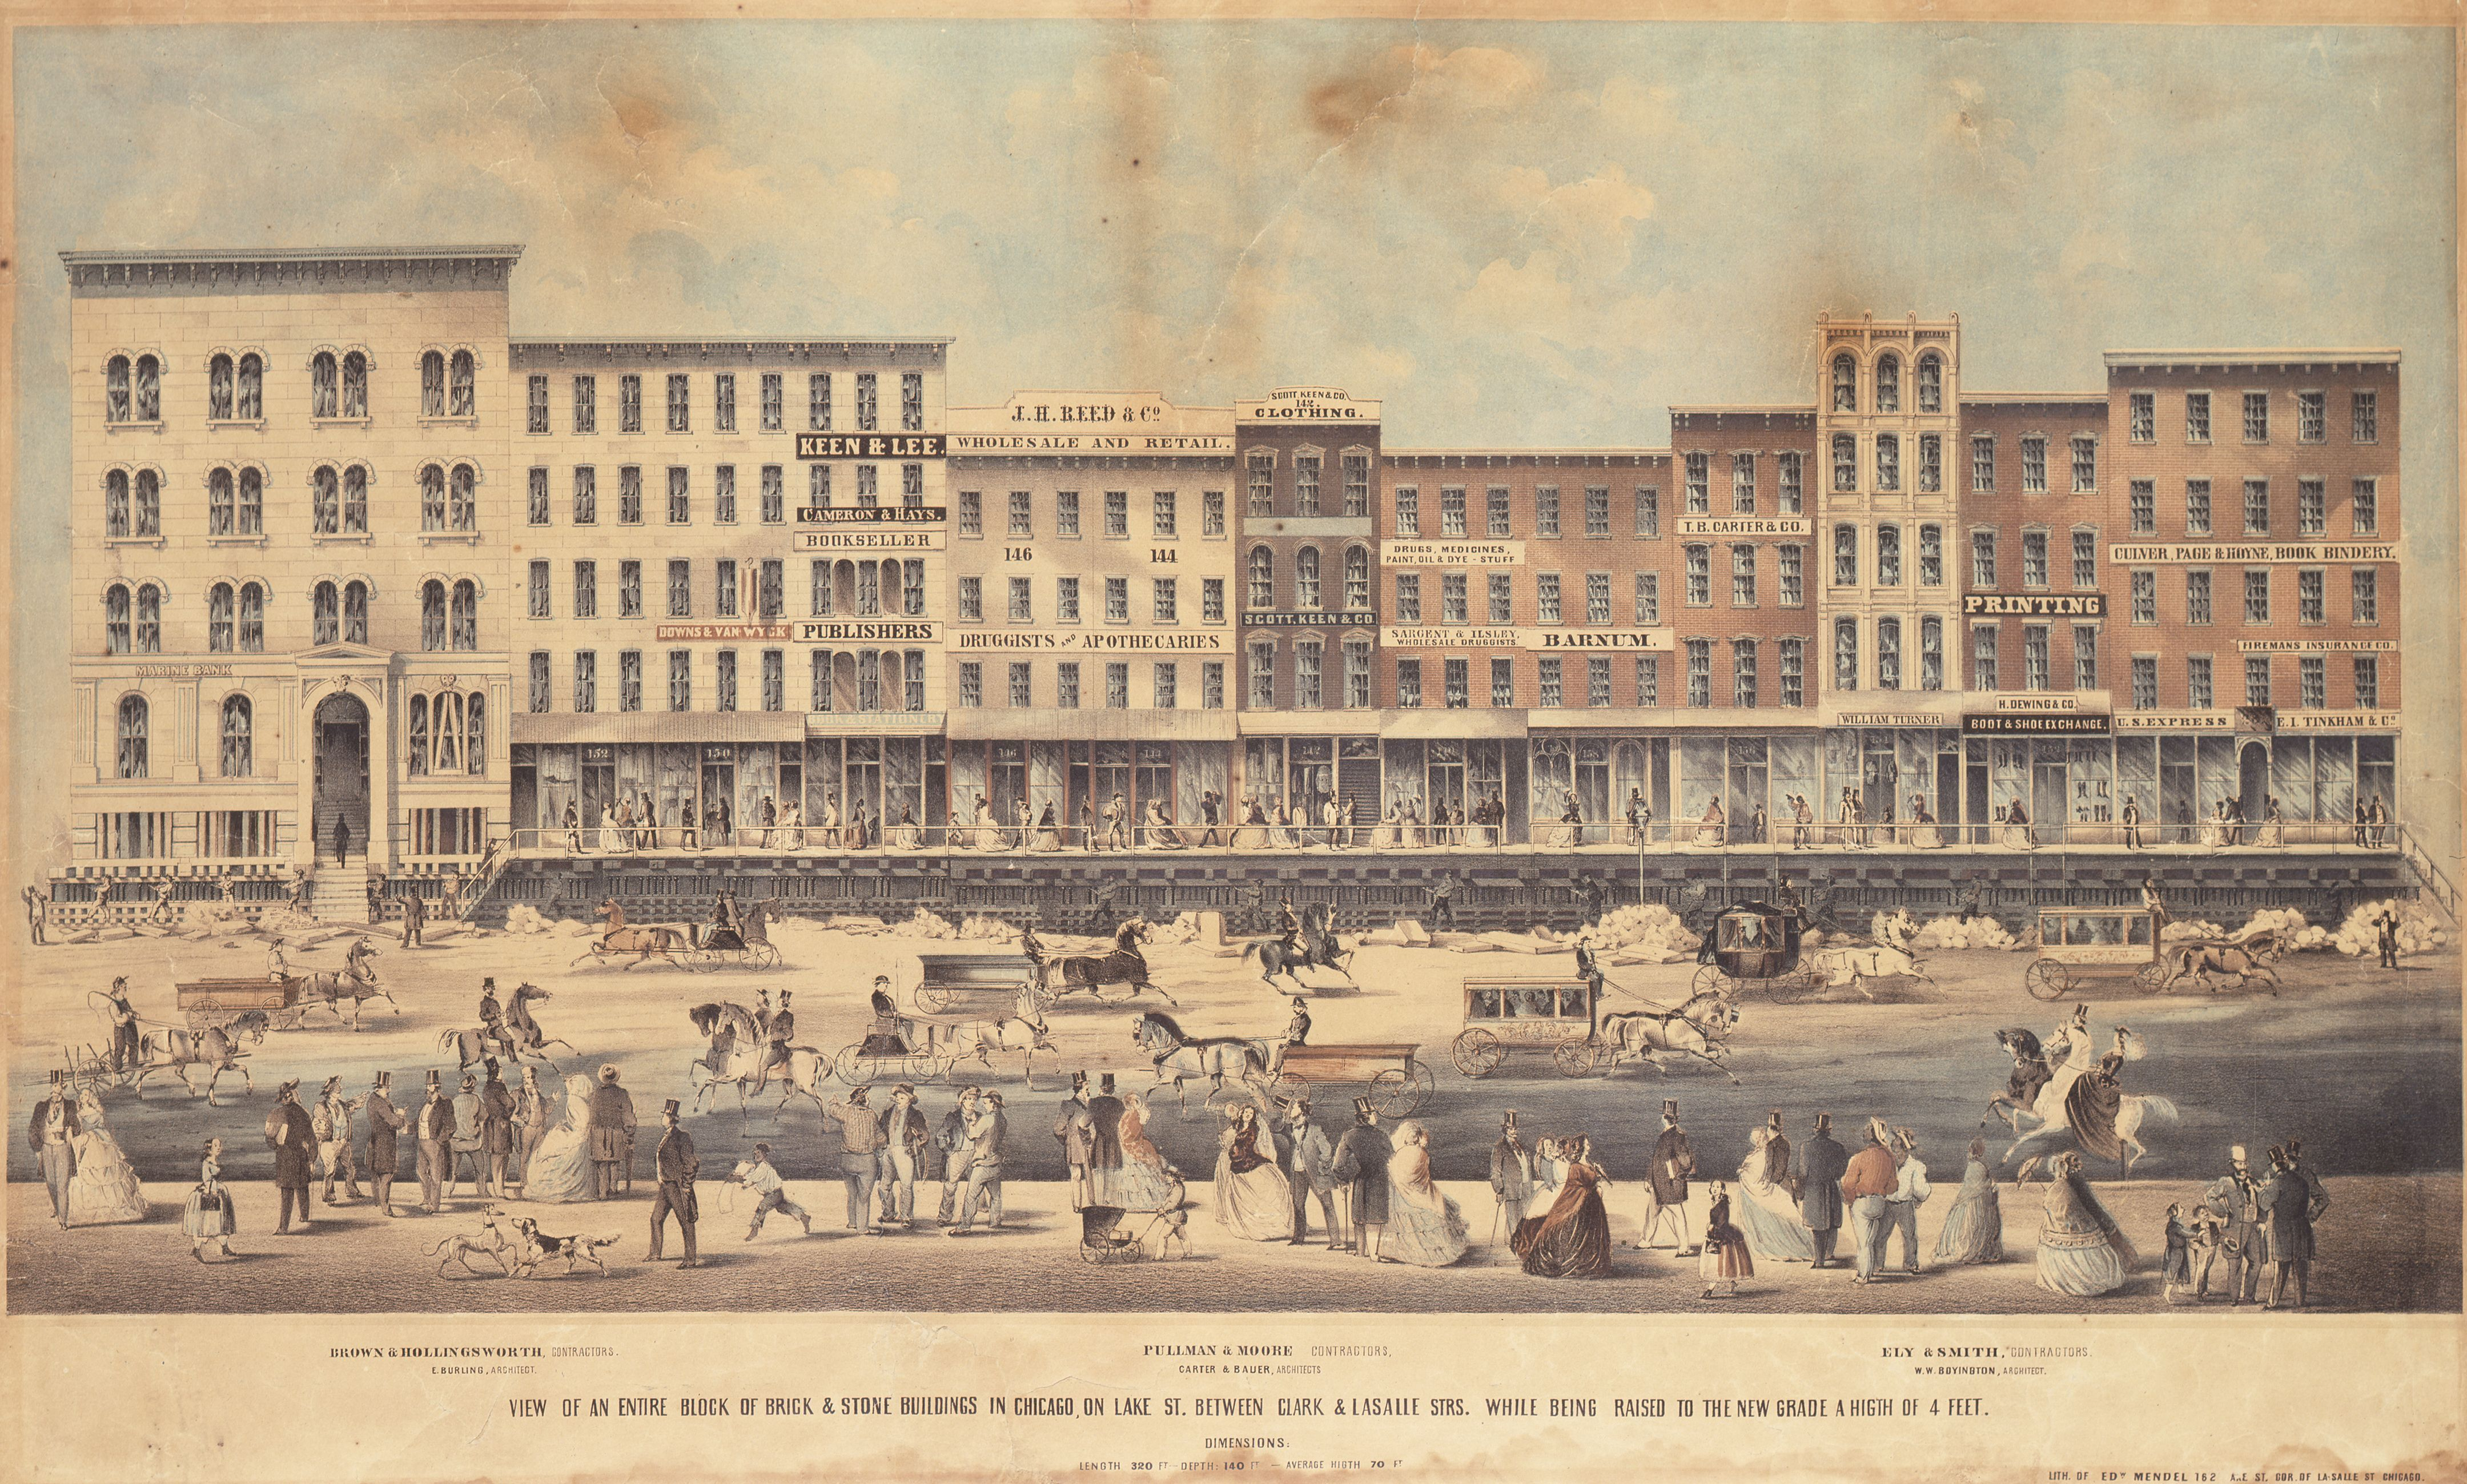 1850's Chicago street being raised by 4ft to install the sewer system underneath the buildings.